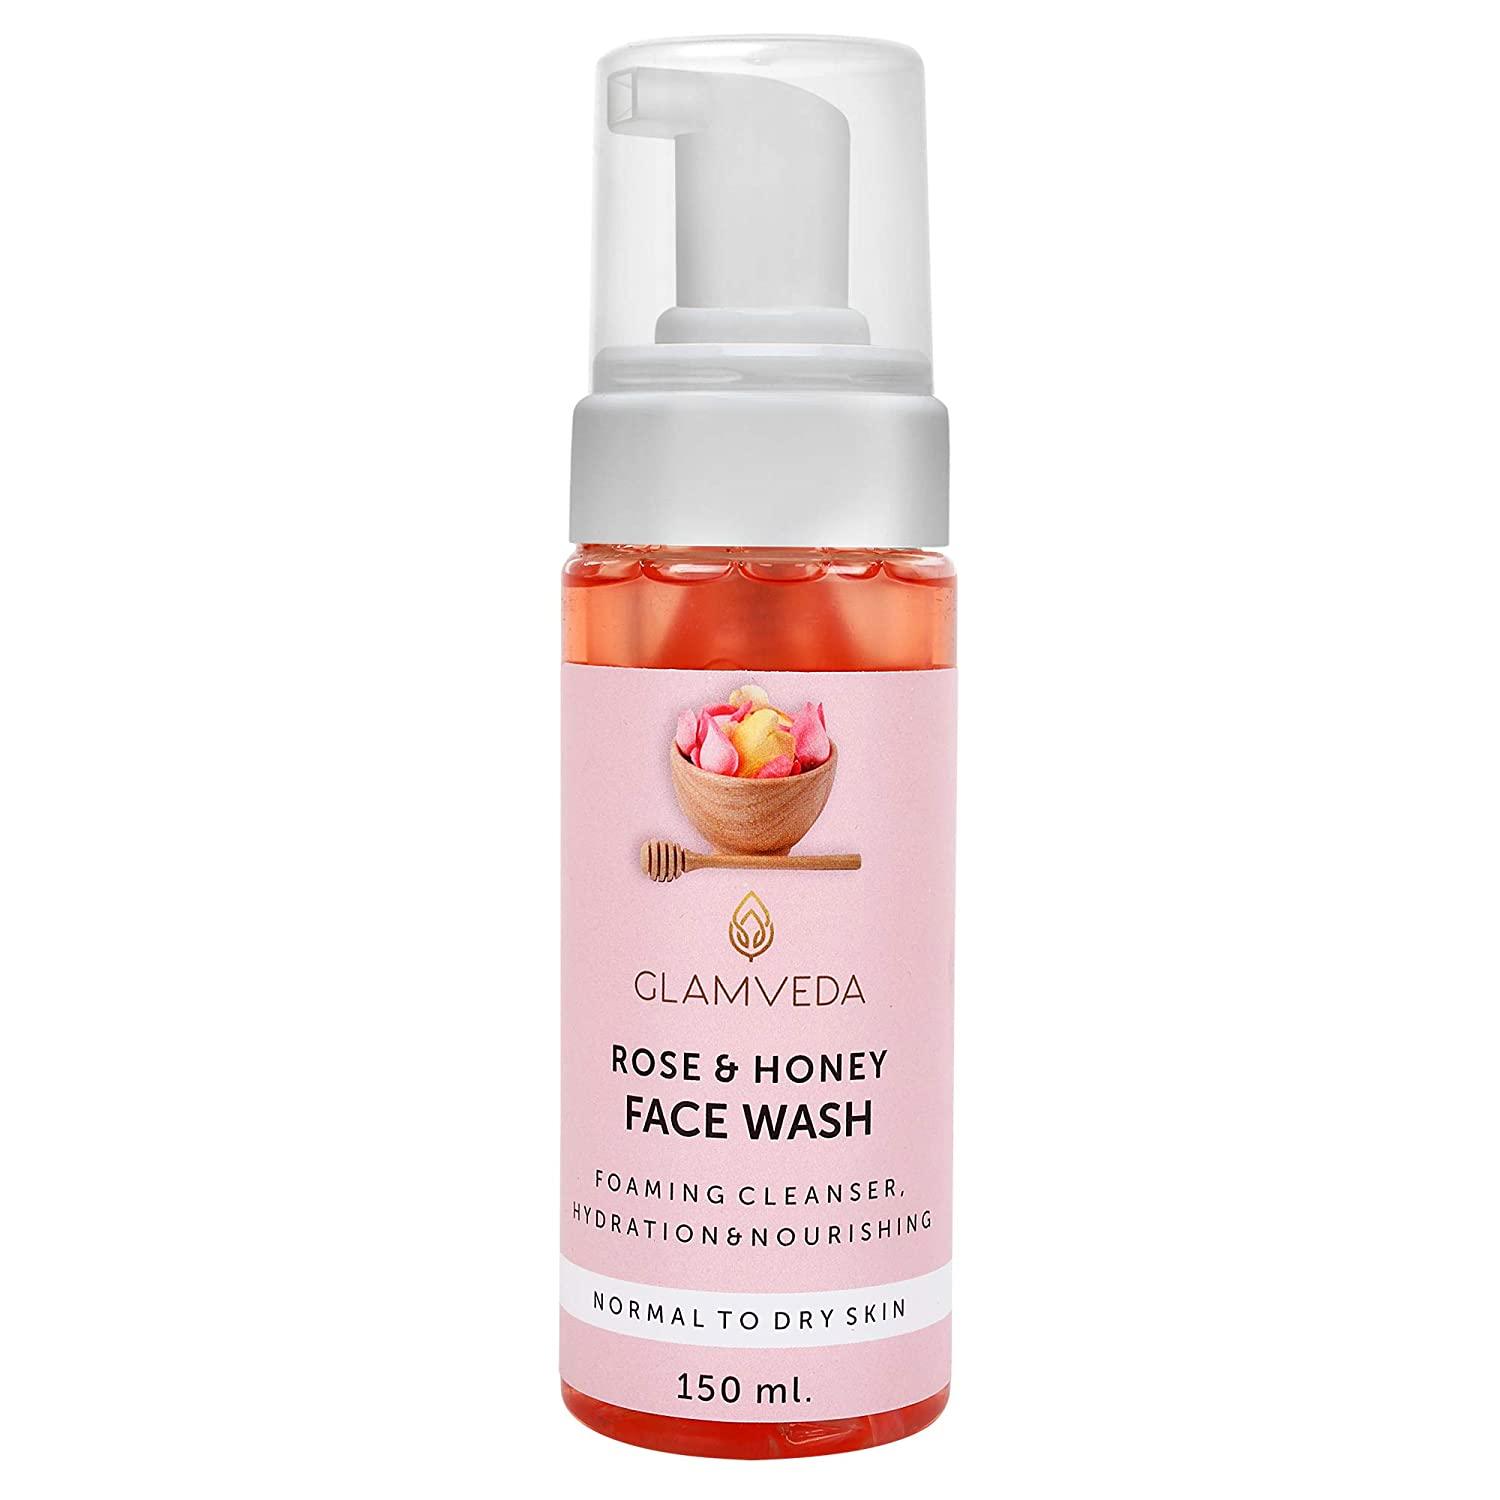 GLAMVEDA ROSE & HONEY HYDRATING FOAMING FACE WASH